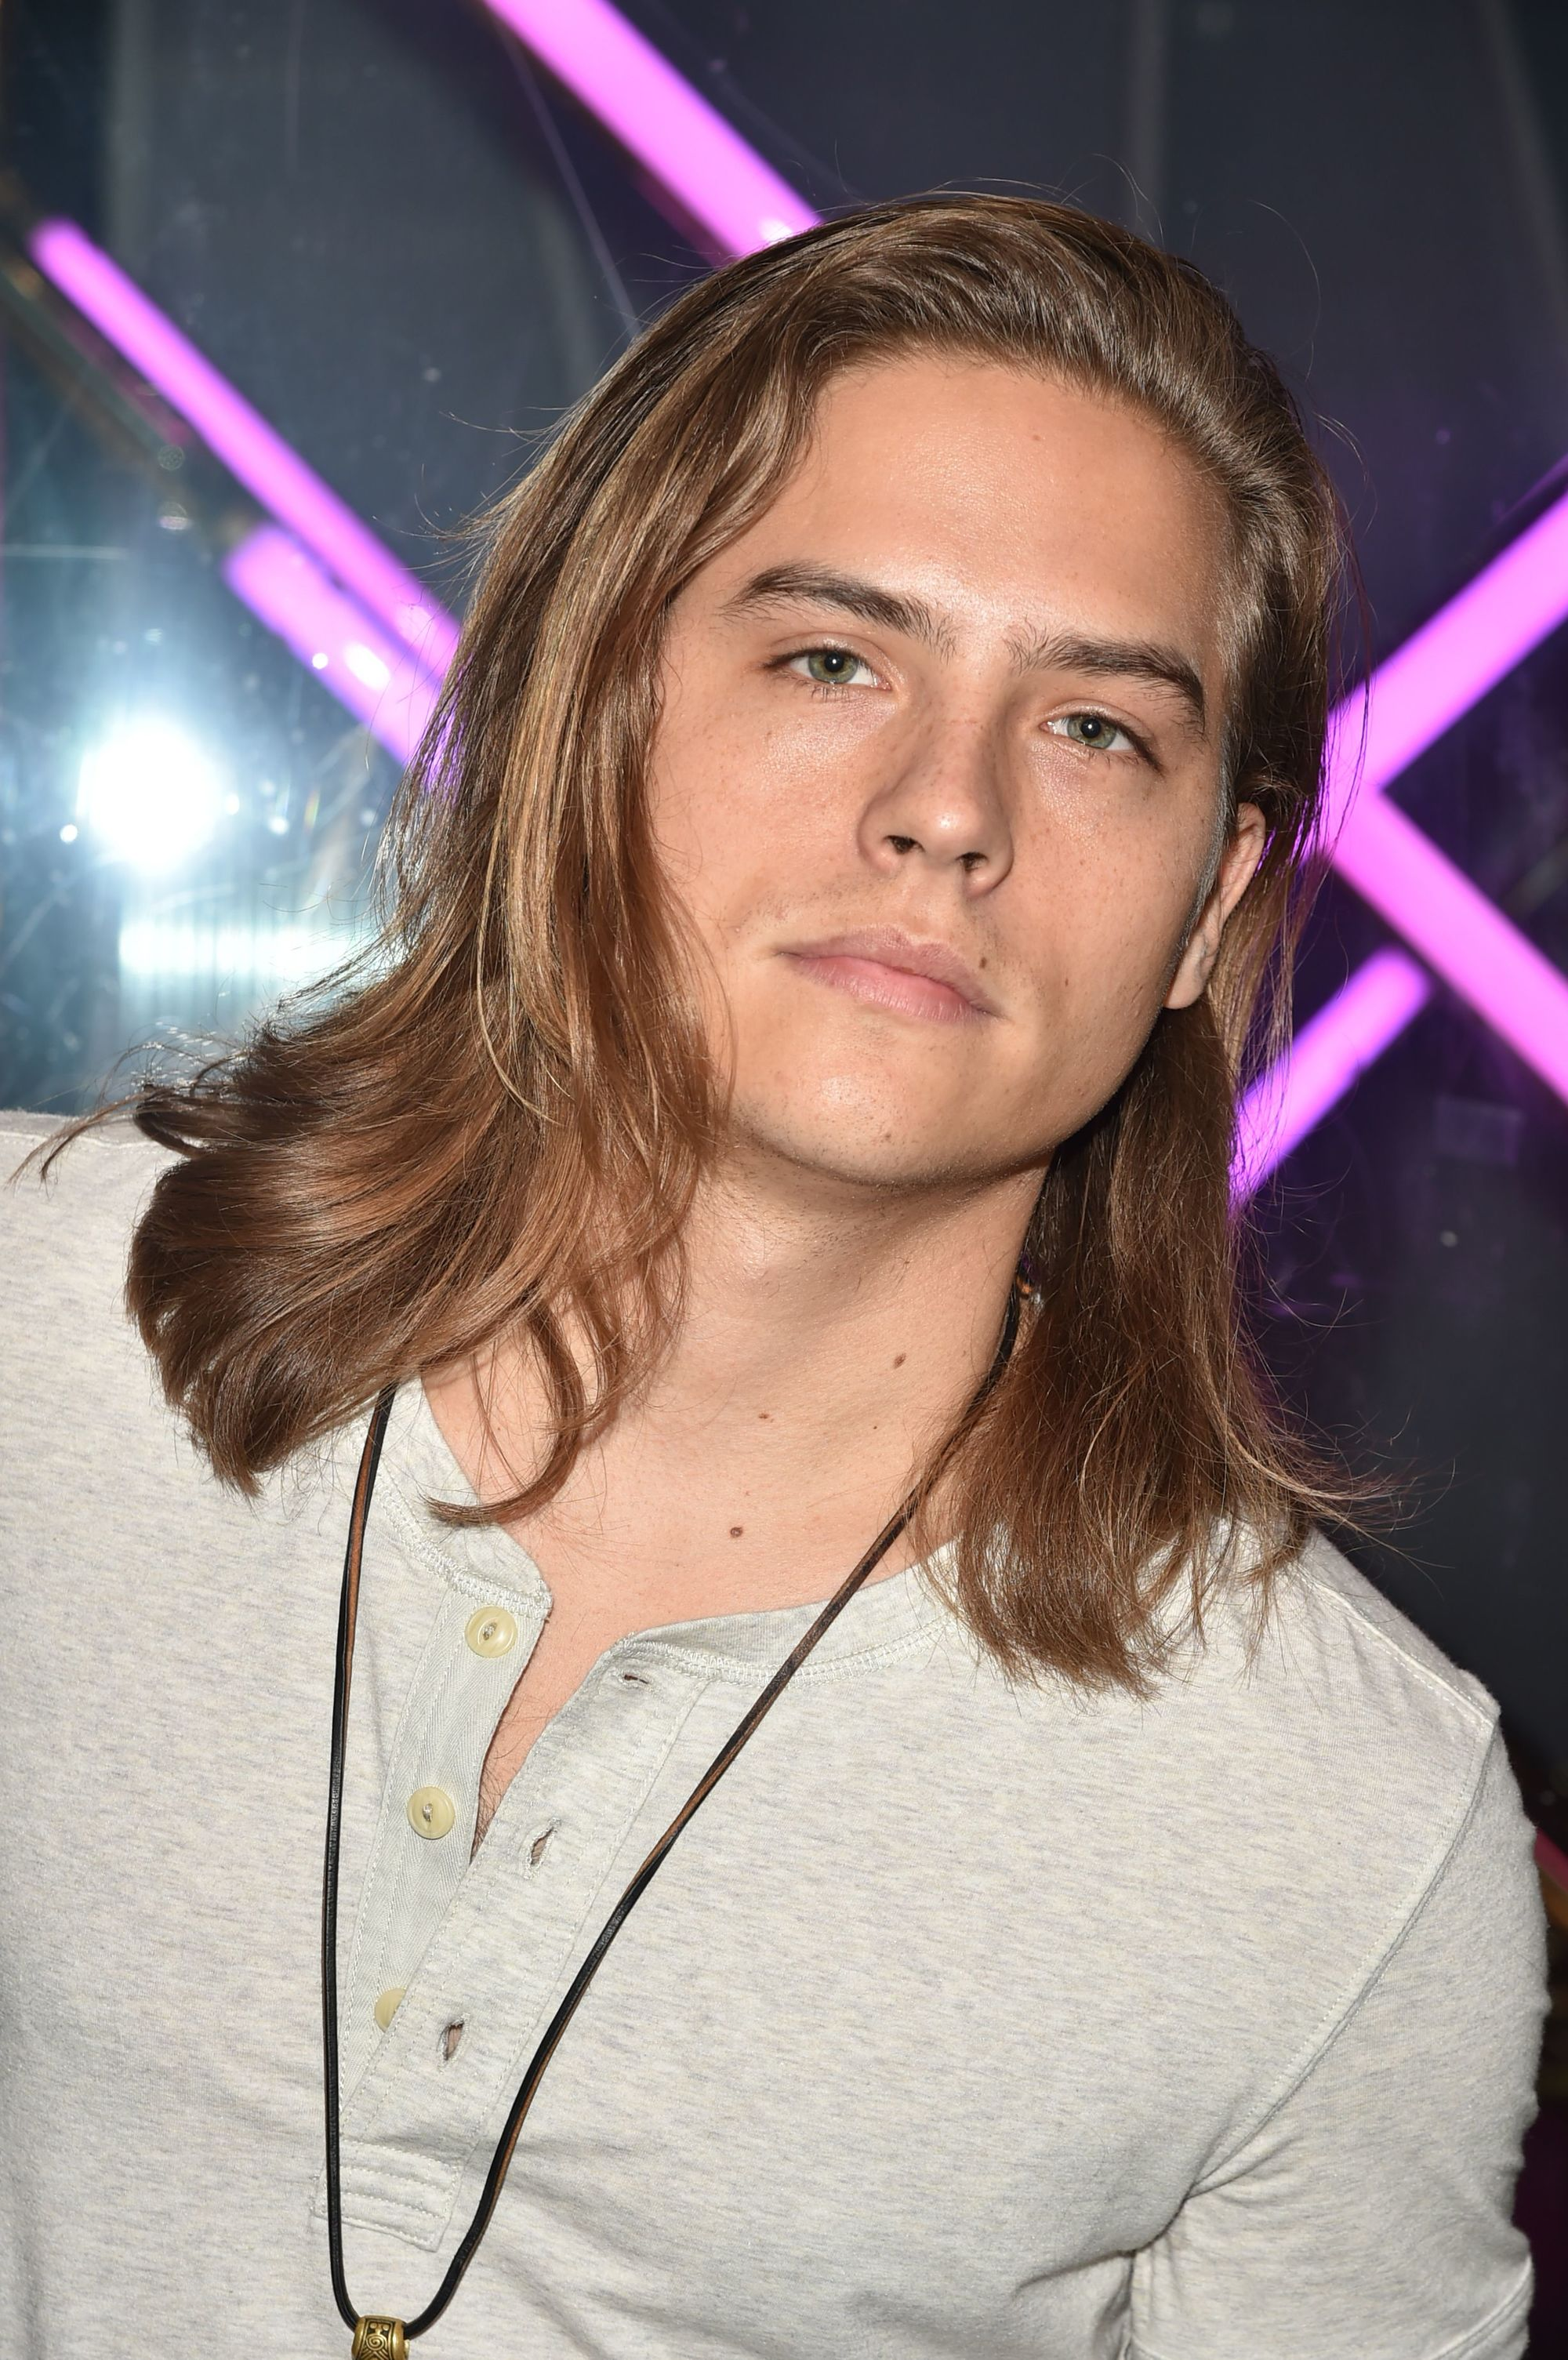 actor dylan sprouse with shoulder length layered dark blonde surfer hair